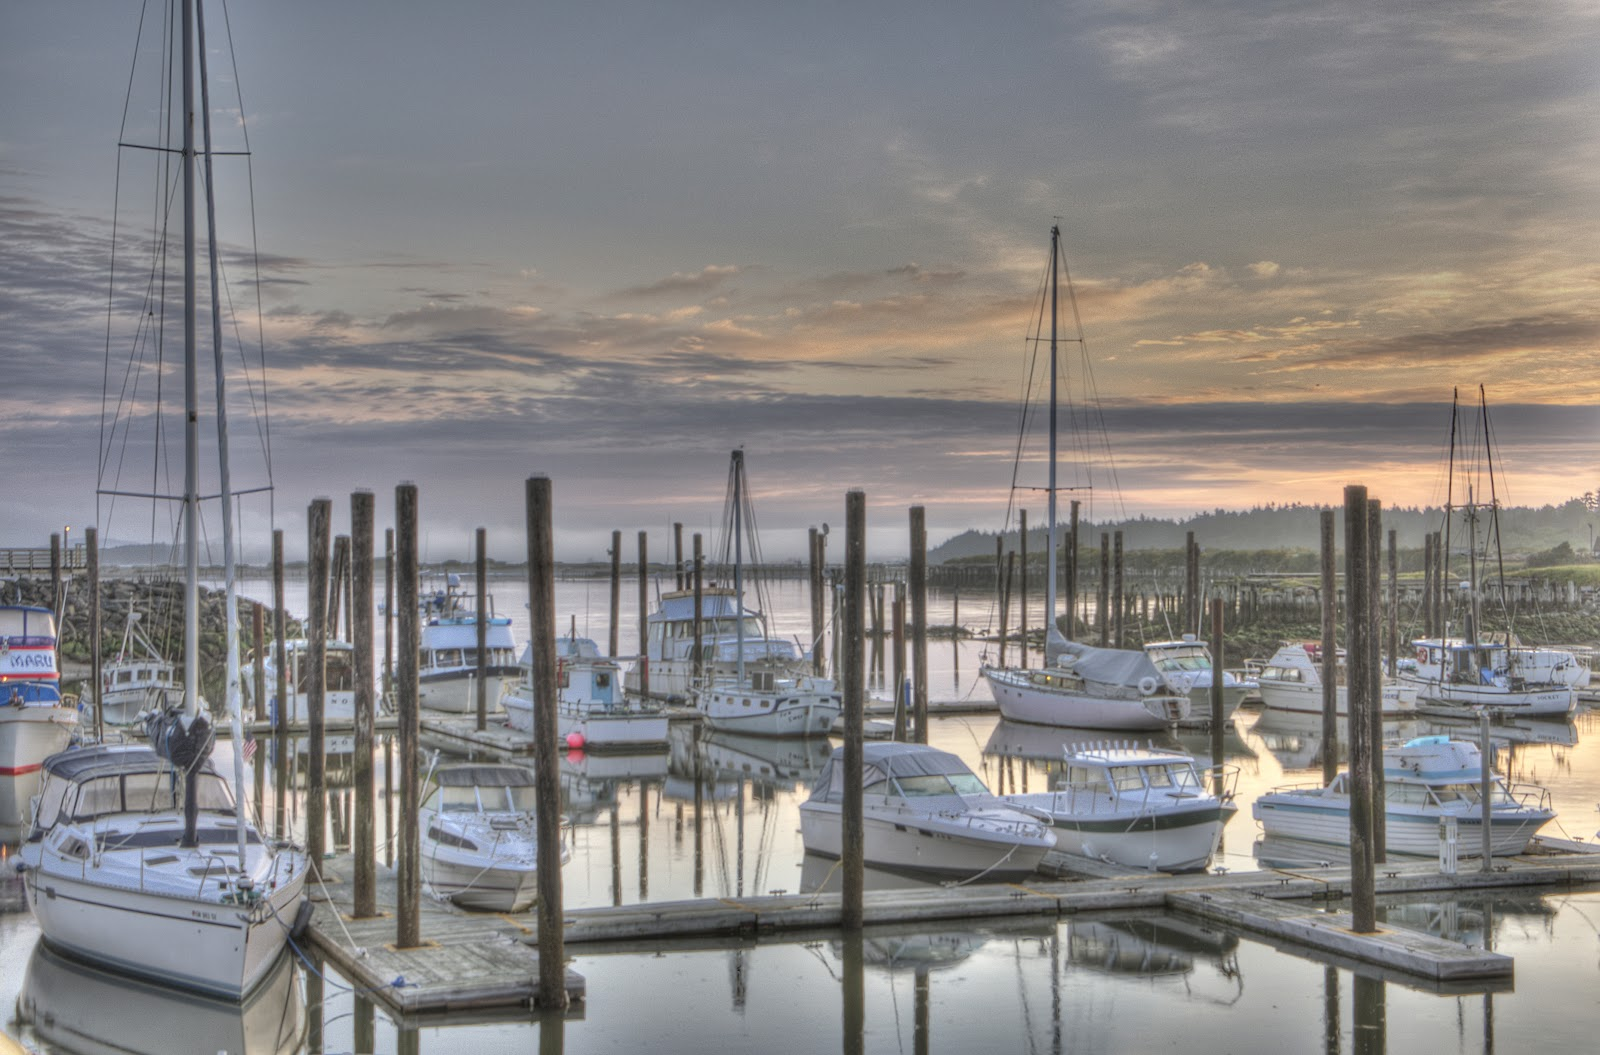 Thom zehrfeld photography beach towns in oregon for Best small towns in oregon to live